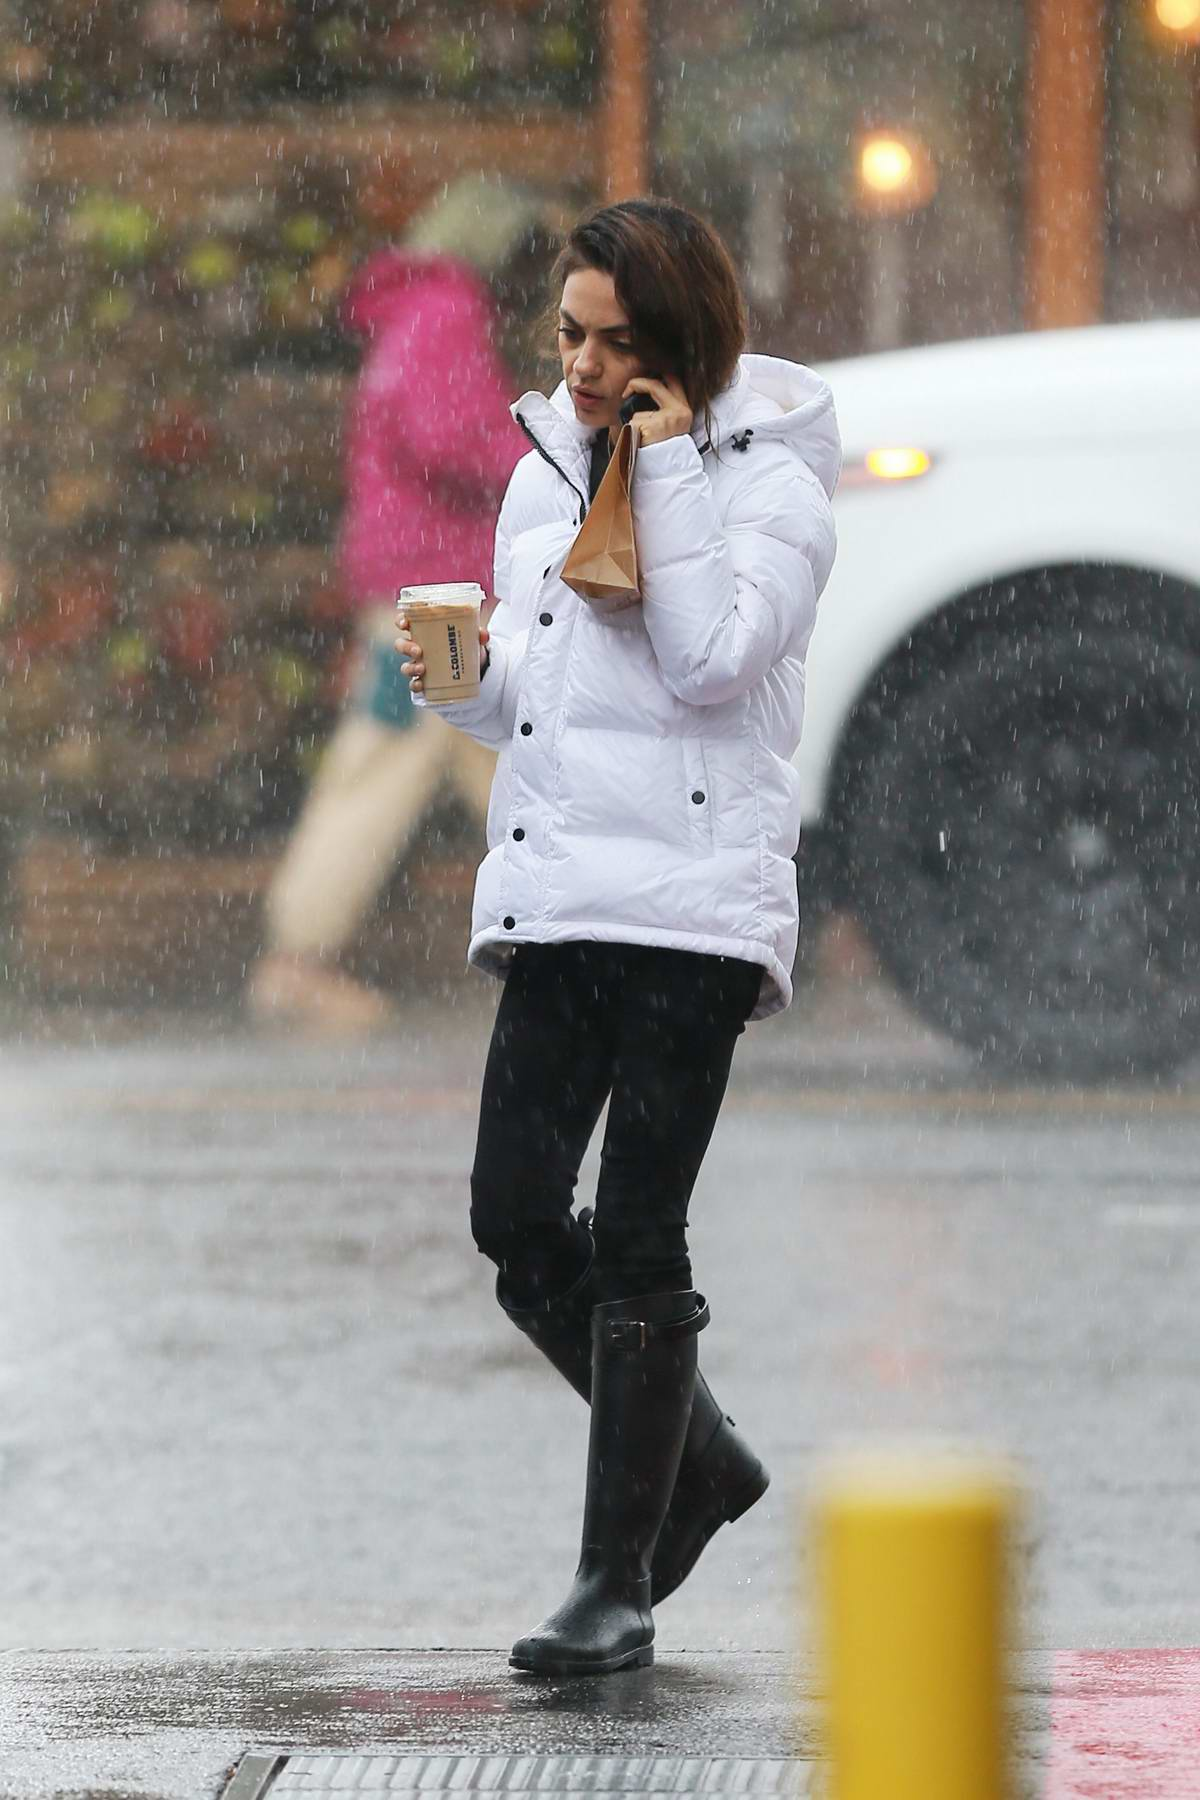 Mila Kunis wears a white parka as she steps out in the rain for some coffee in Los Angeles